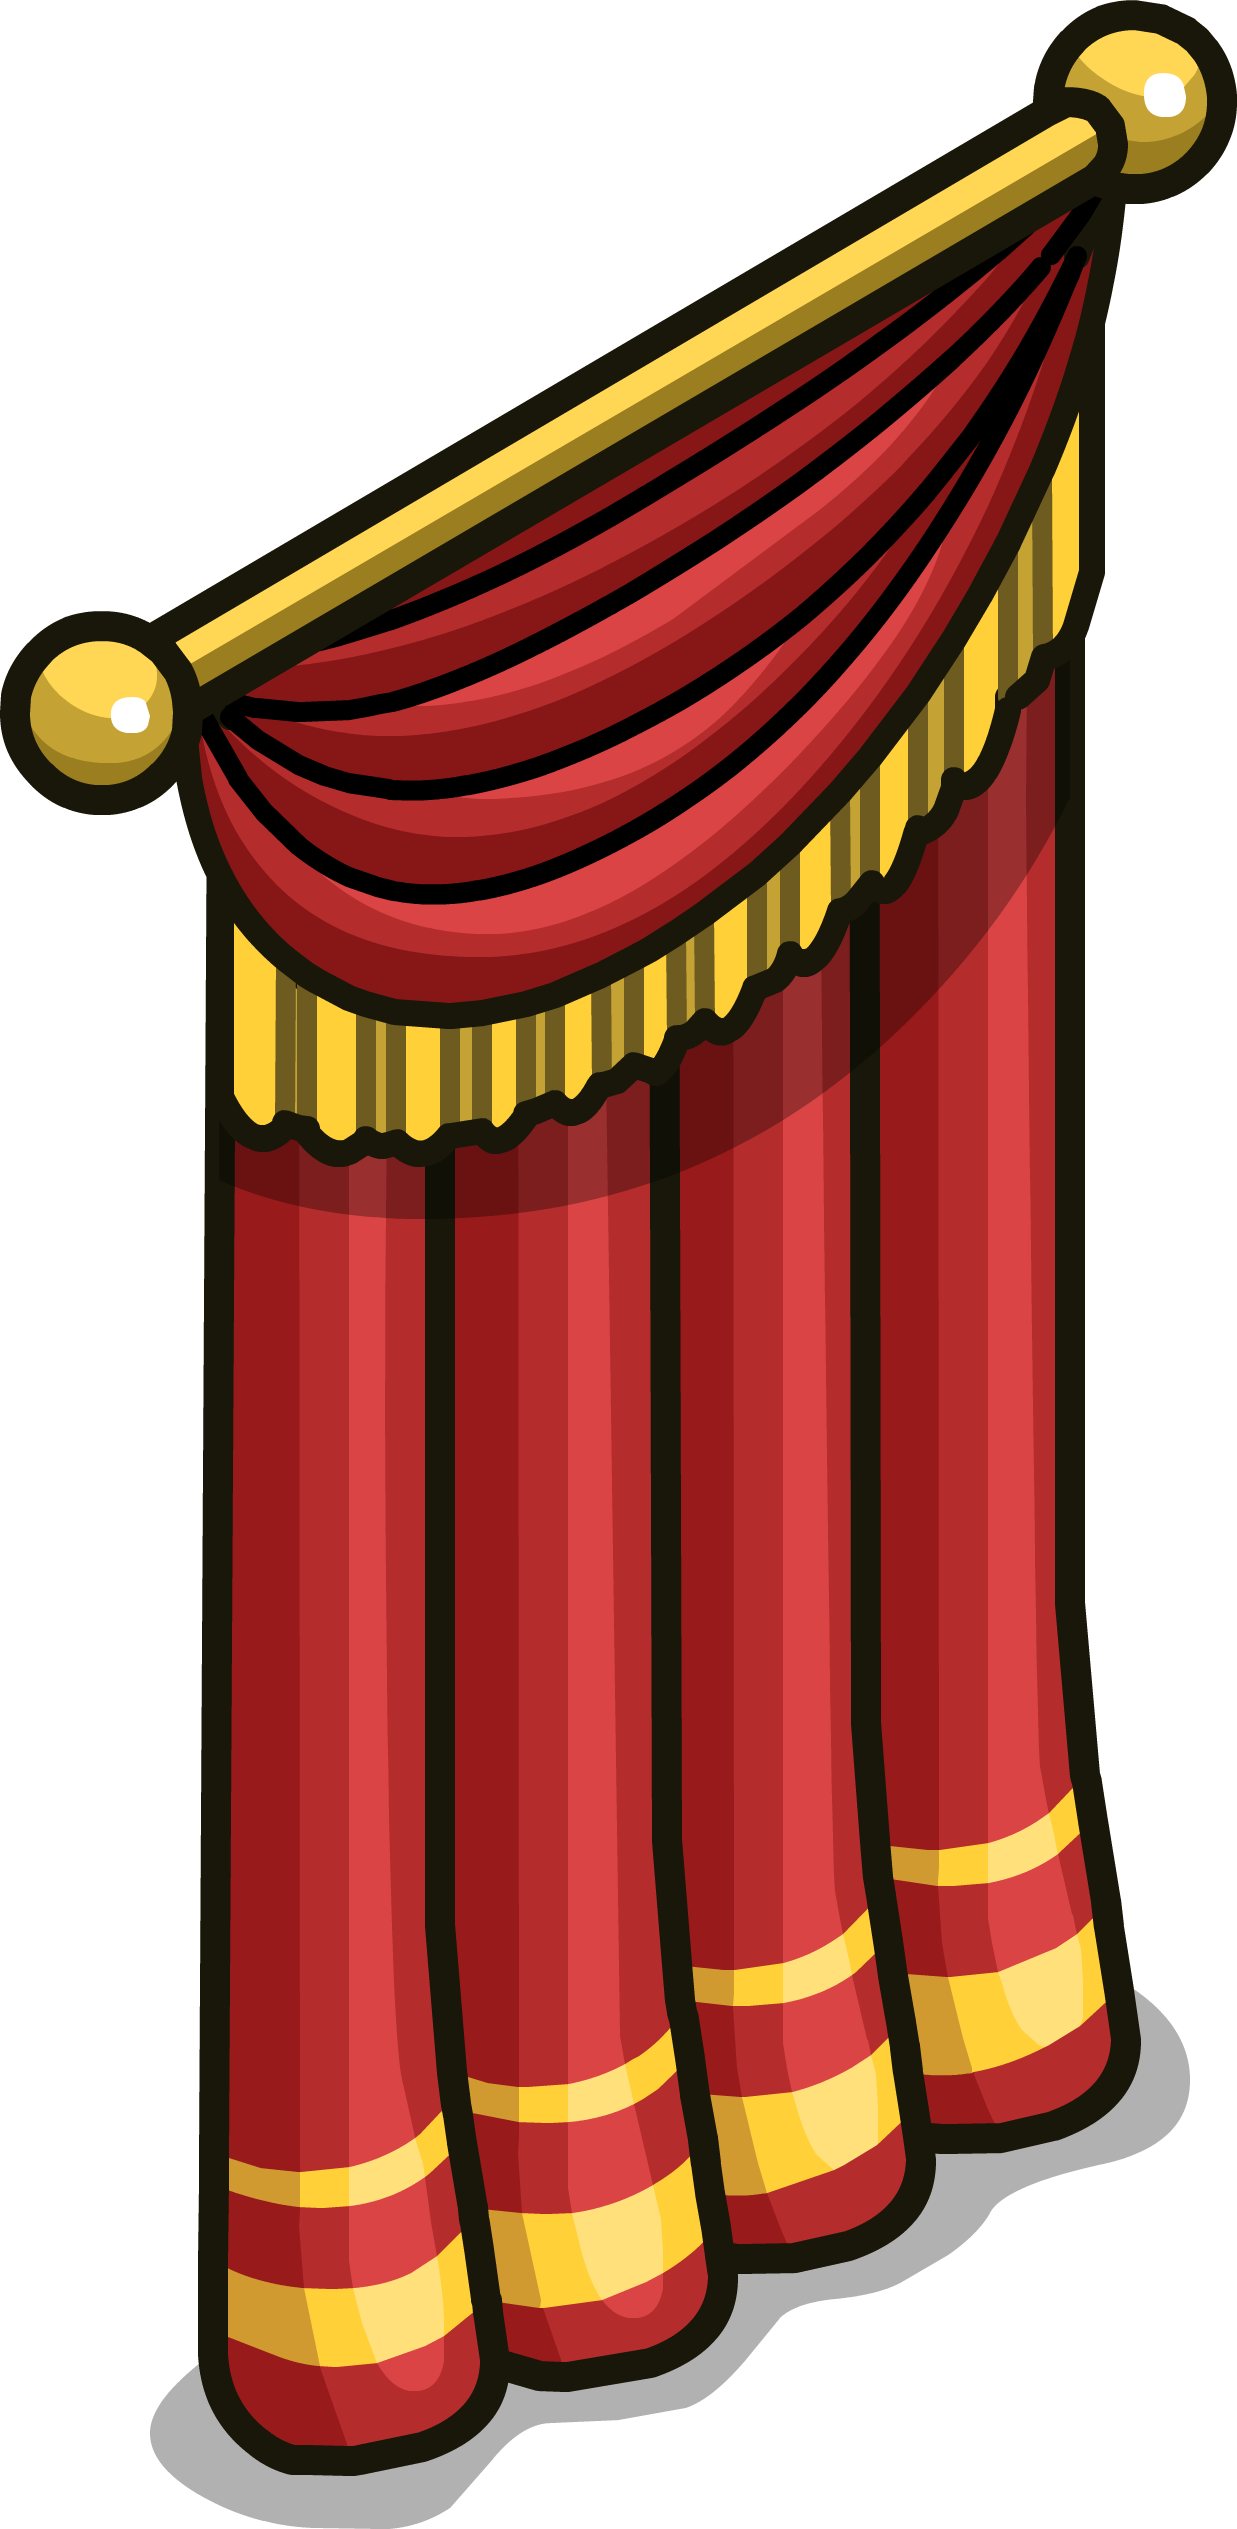 Image stage sprite png. Win clipart curtain clipart